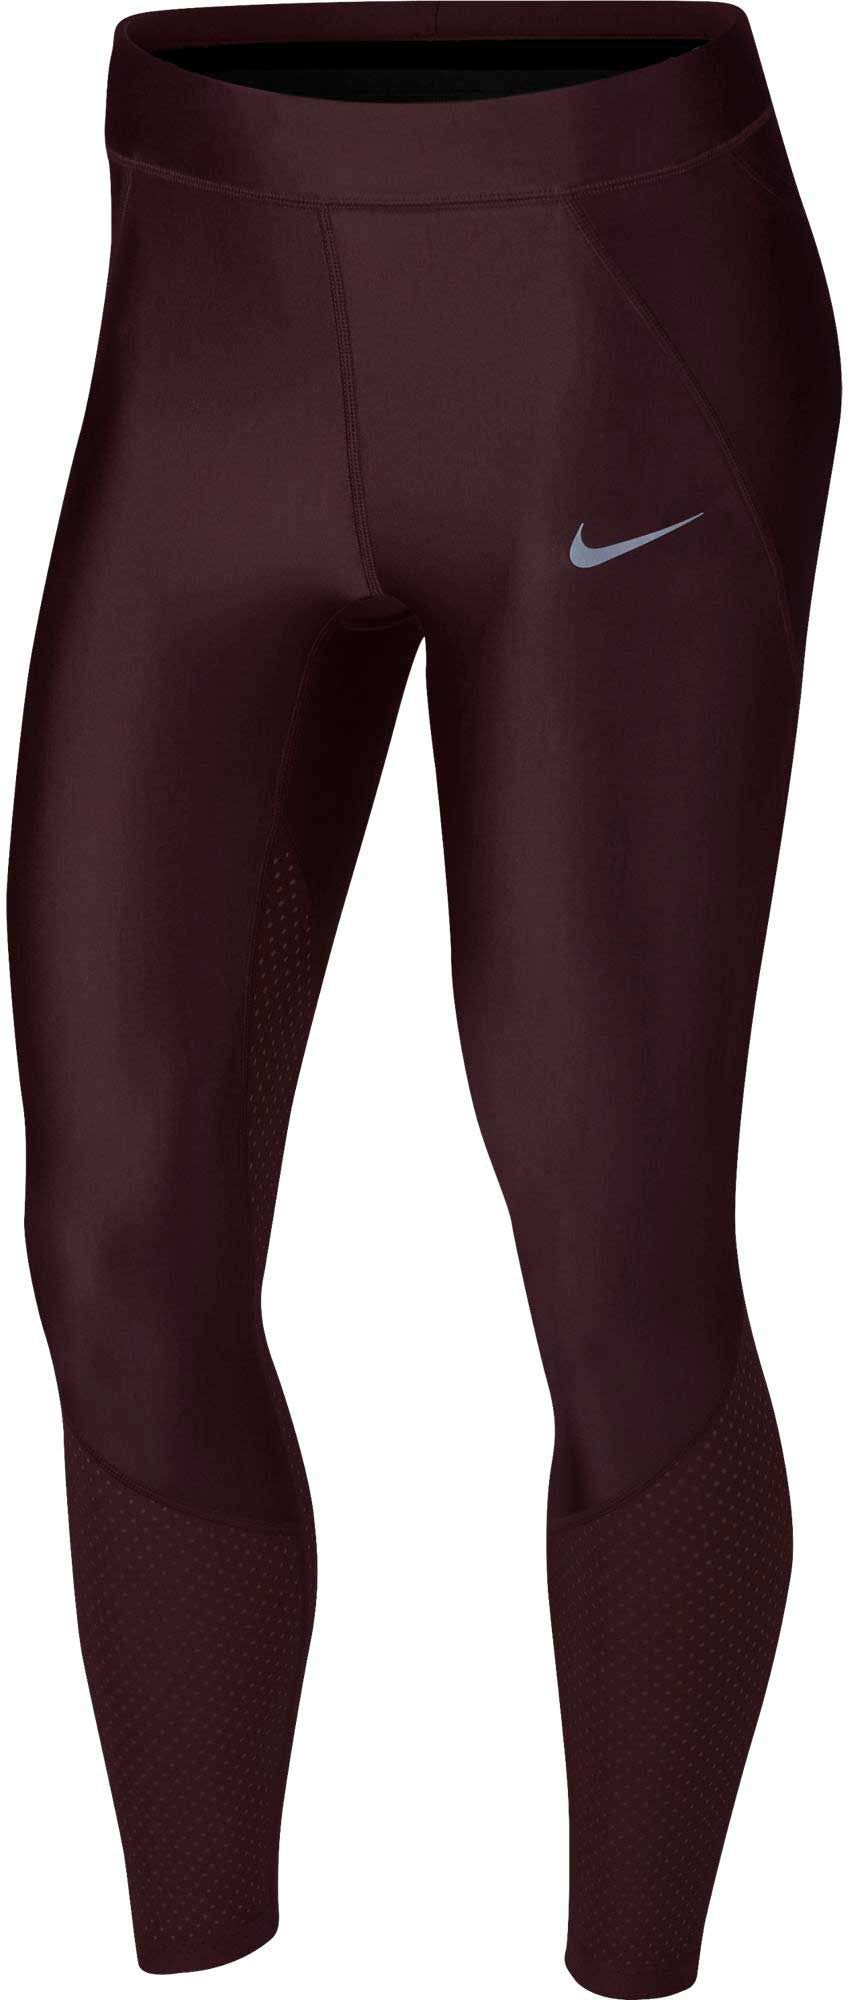 NIKE Women's Speed Cool 7/8 Running Tights (Burgundy Crush, Large) by Nike (Image #1)